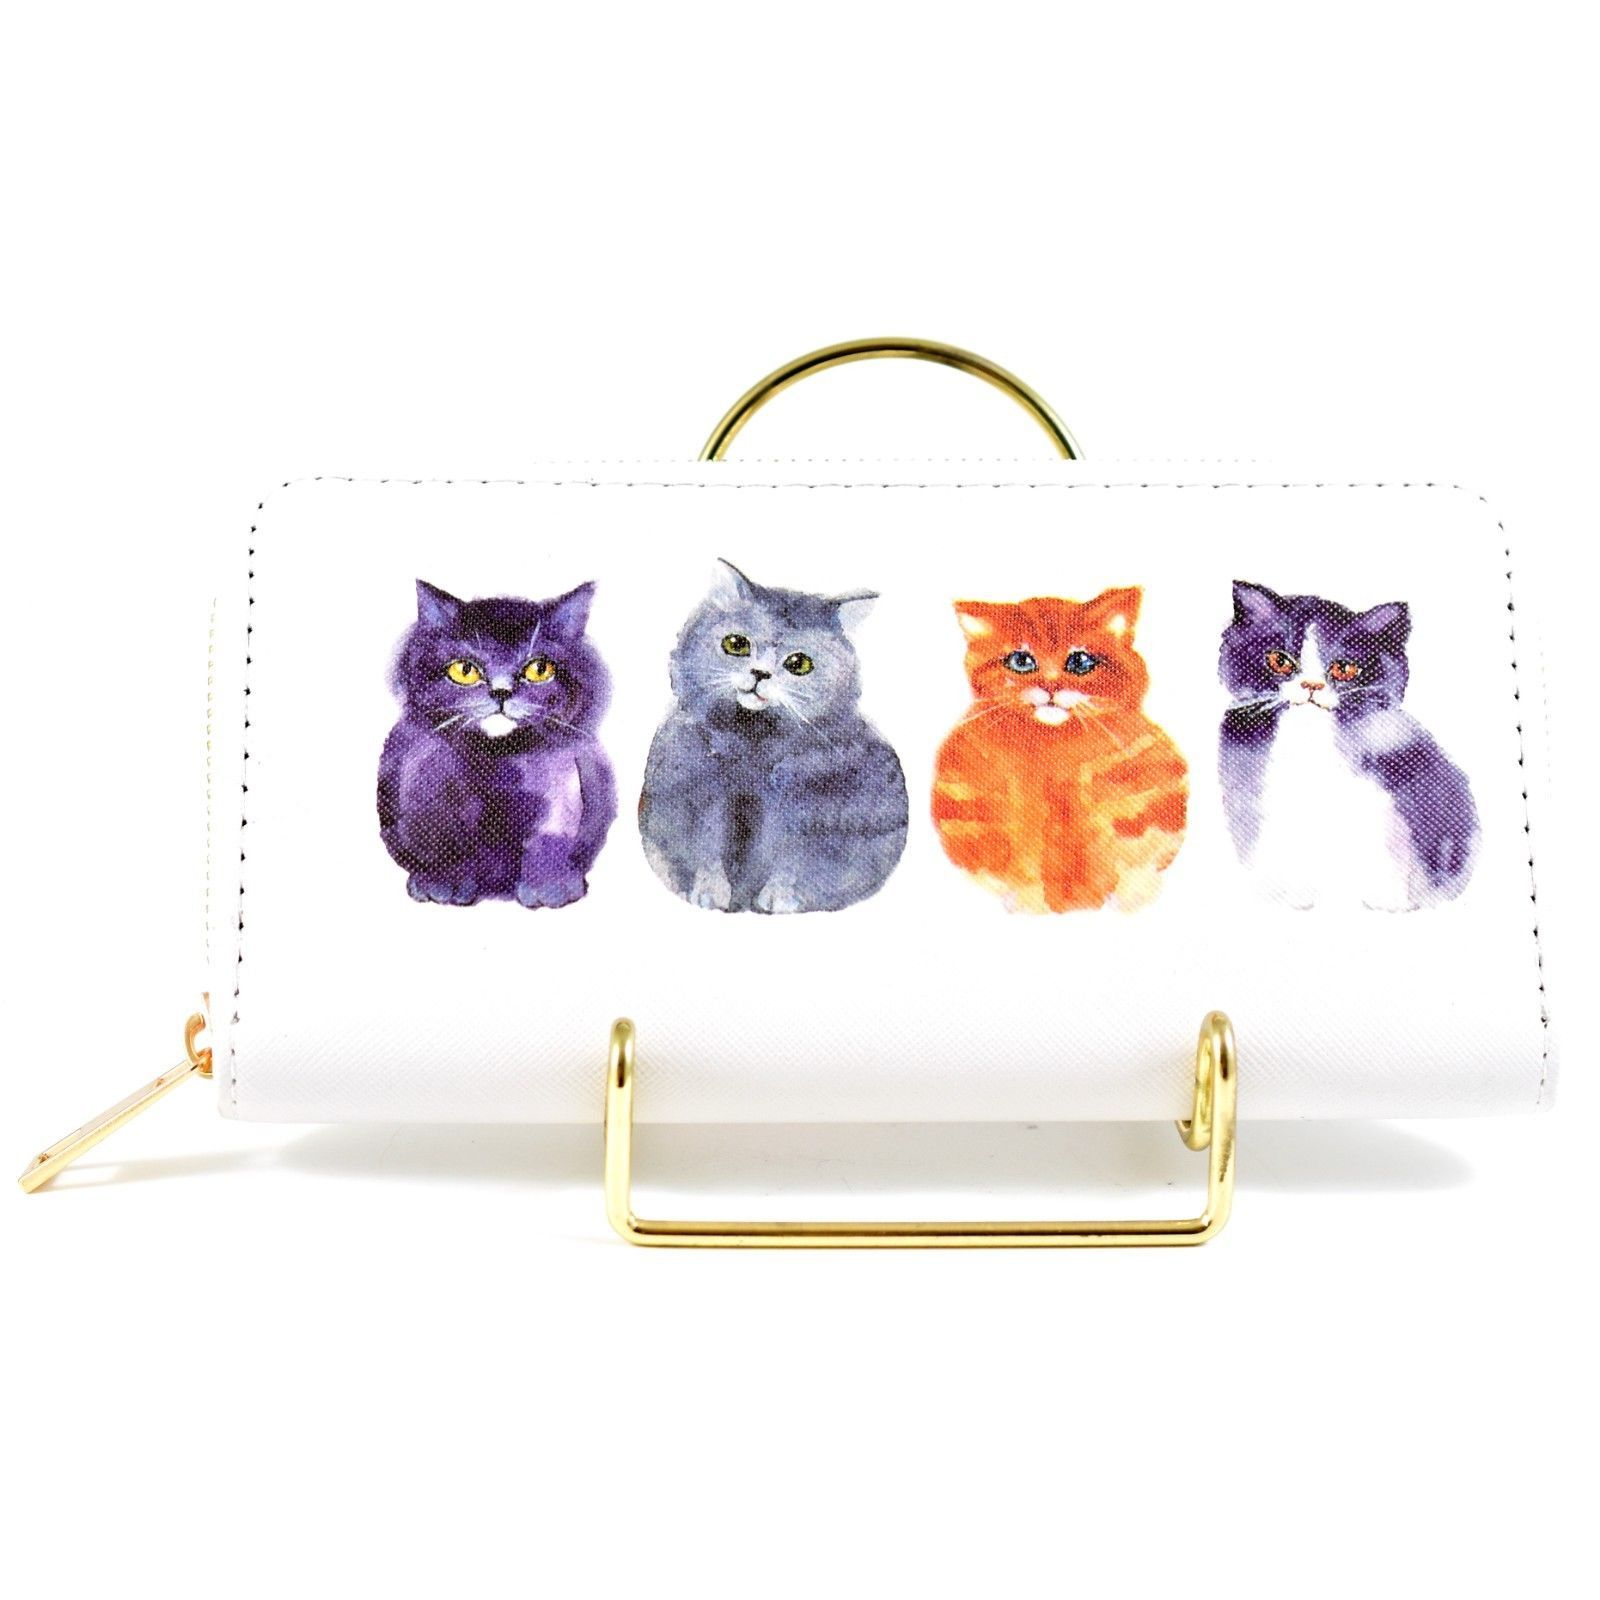 Four Fat Kitten Kitty Cats Design Printed Vinyl Zip Around Clutch Wallet NEW